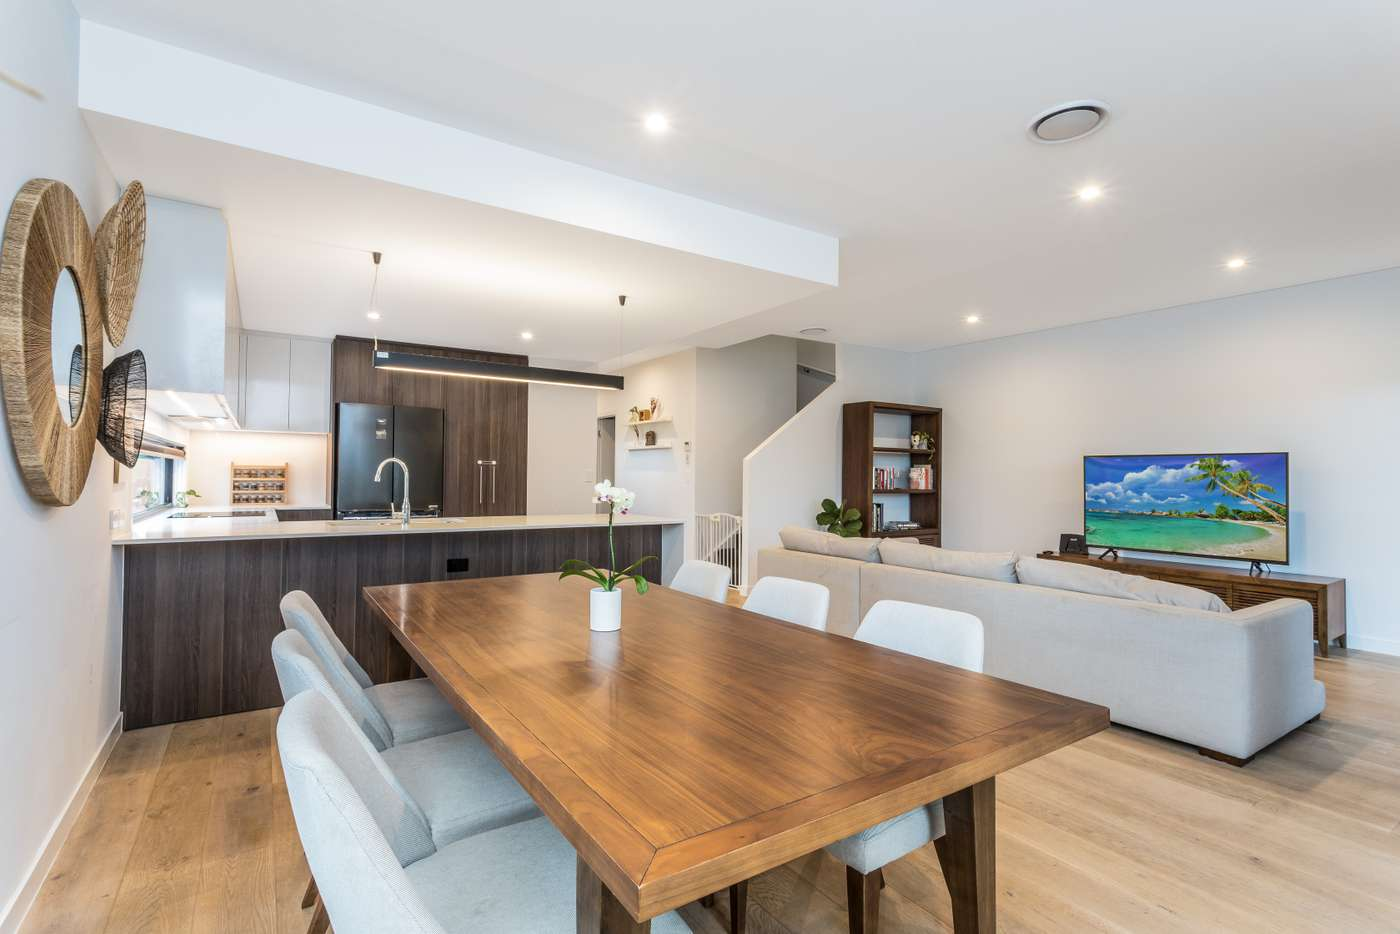 Main view of Homely house listing, 1 Tasmania Avenue, Newport QLD 4020